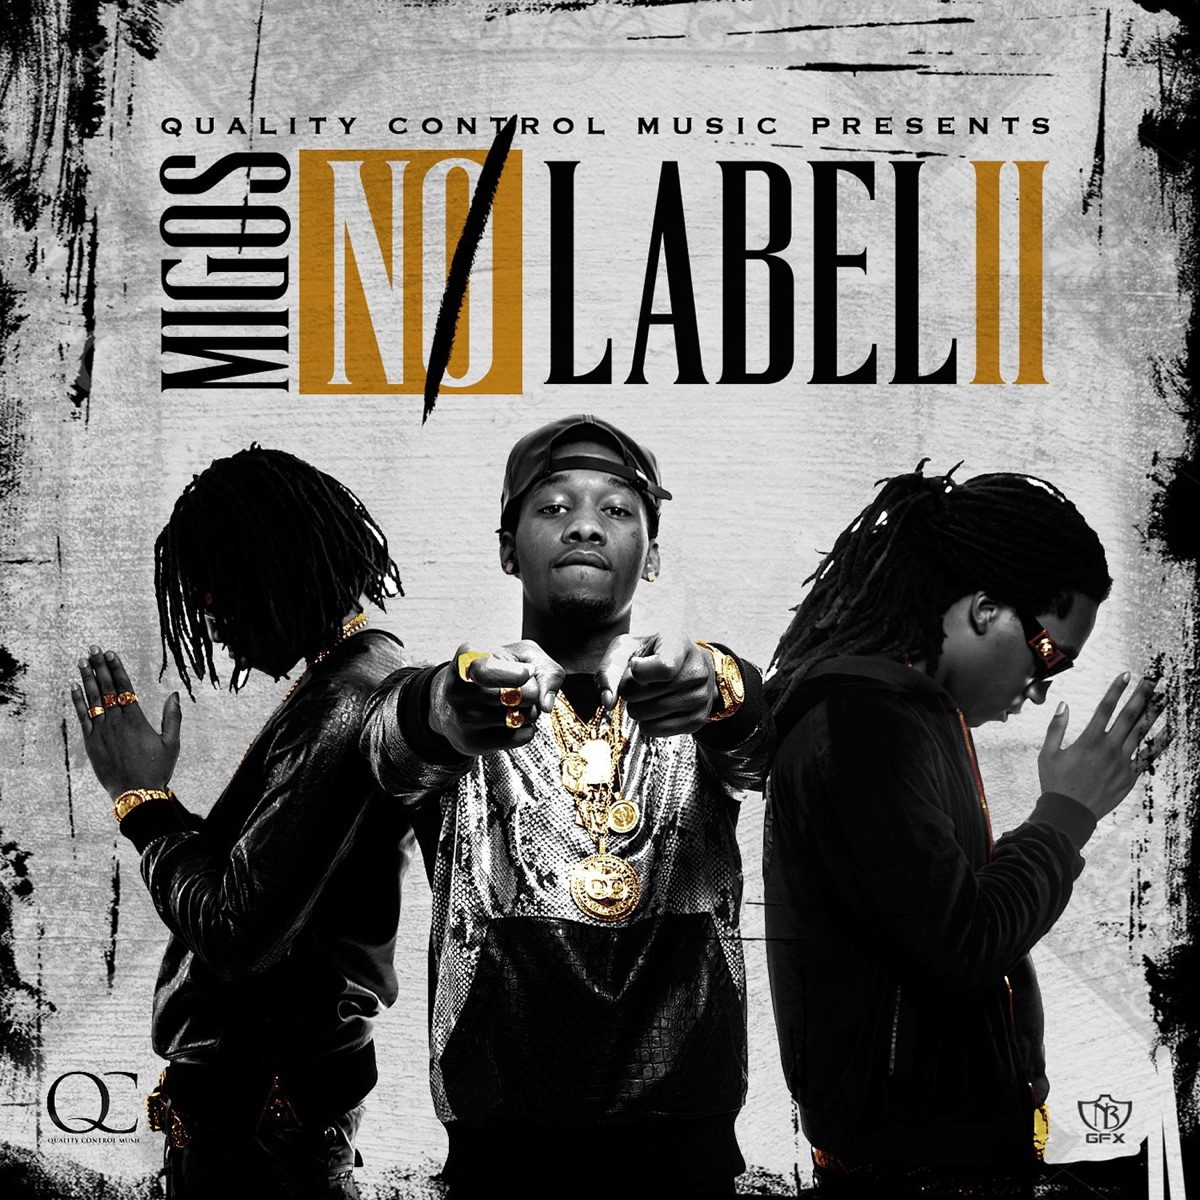 No Label II Migos CD cover